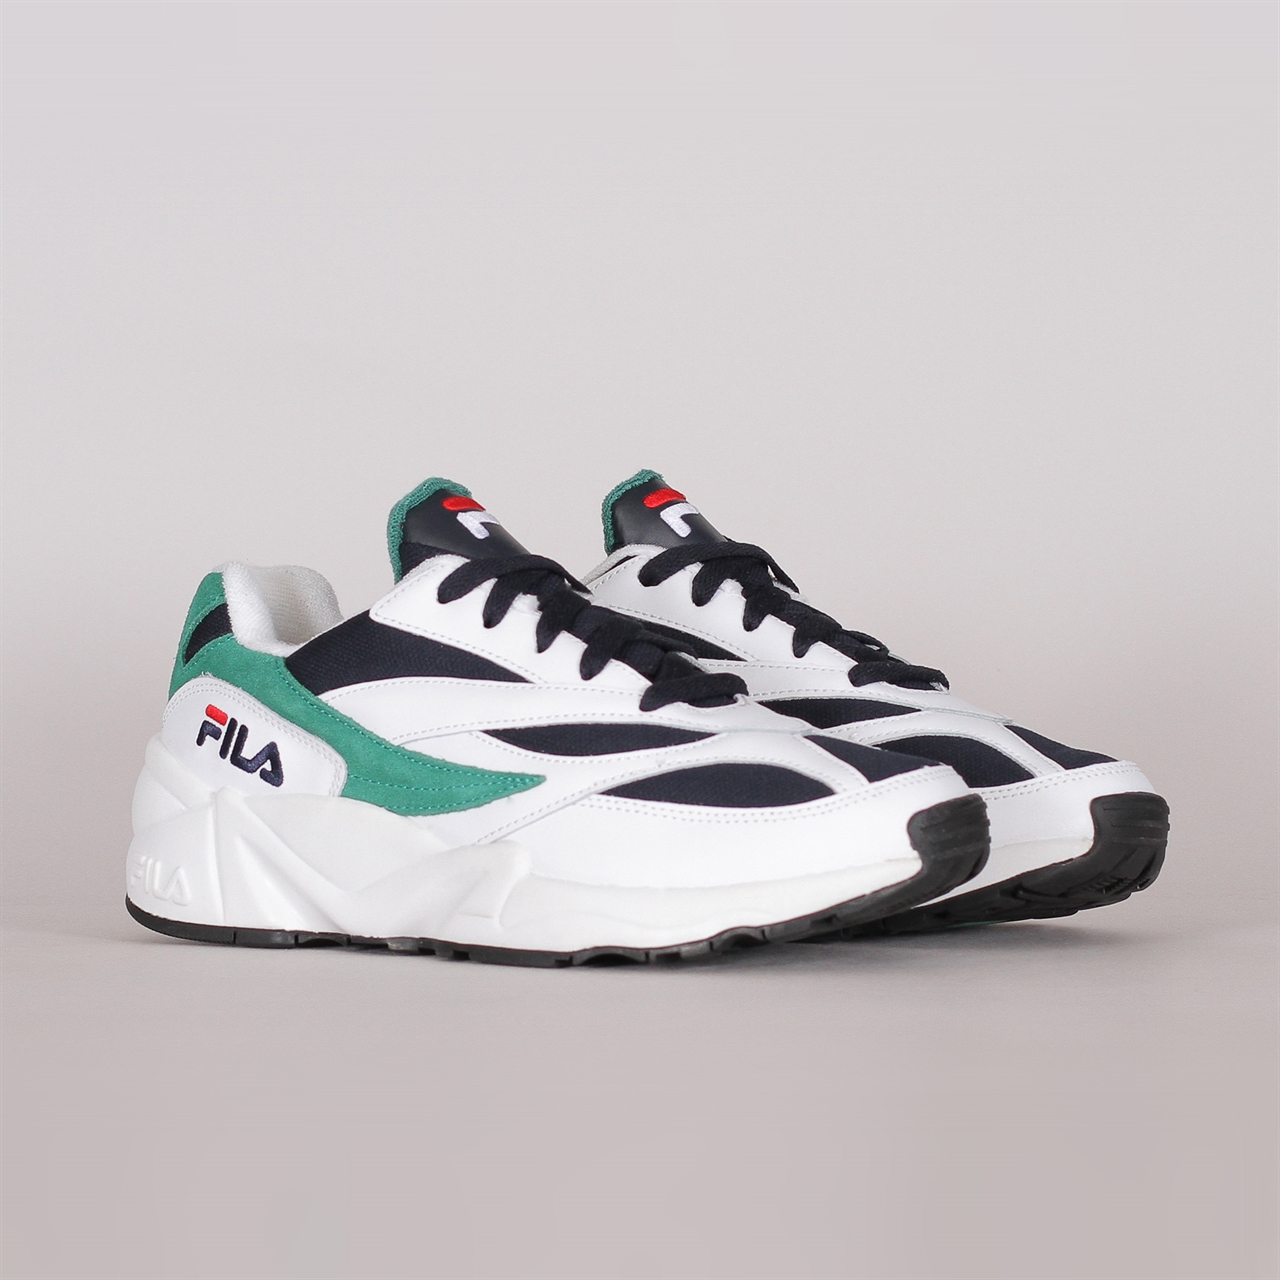 Shelta - Fila Venom Low (1010255-00Q)